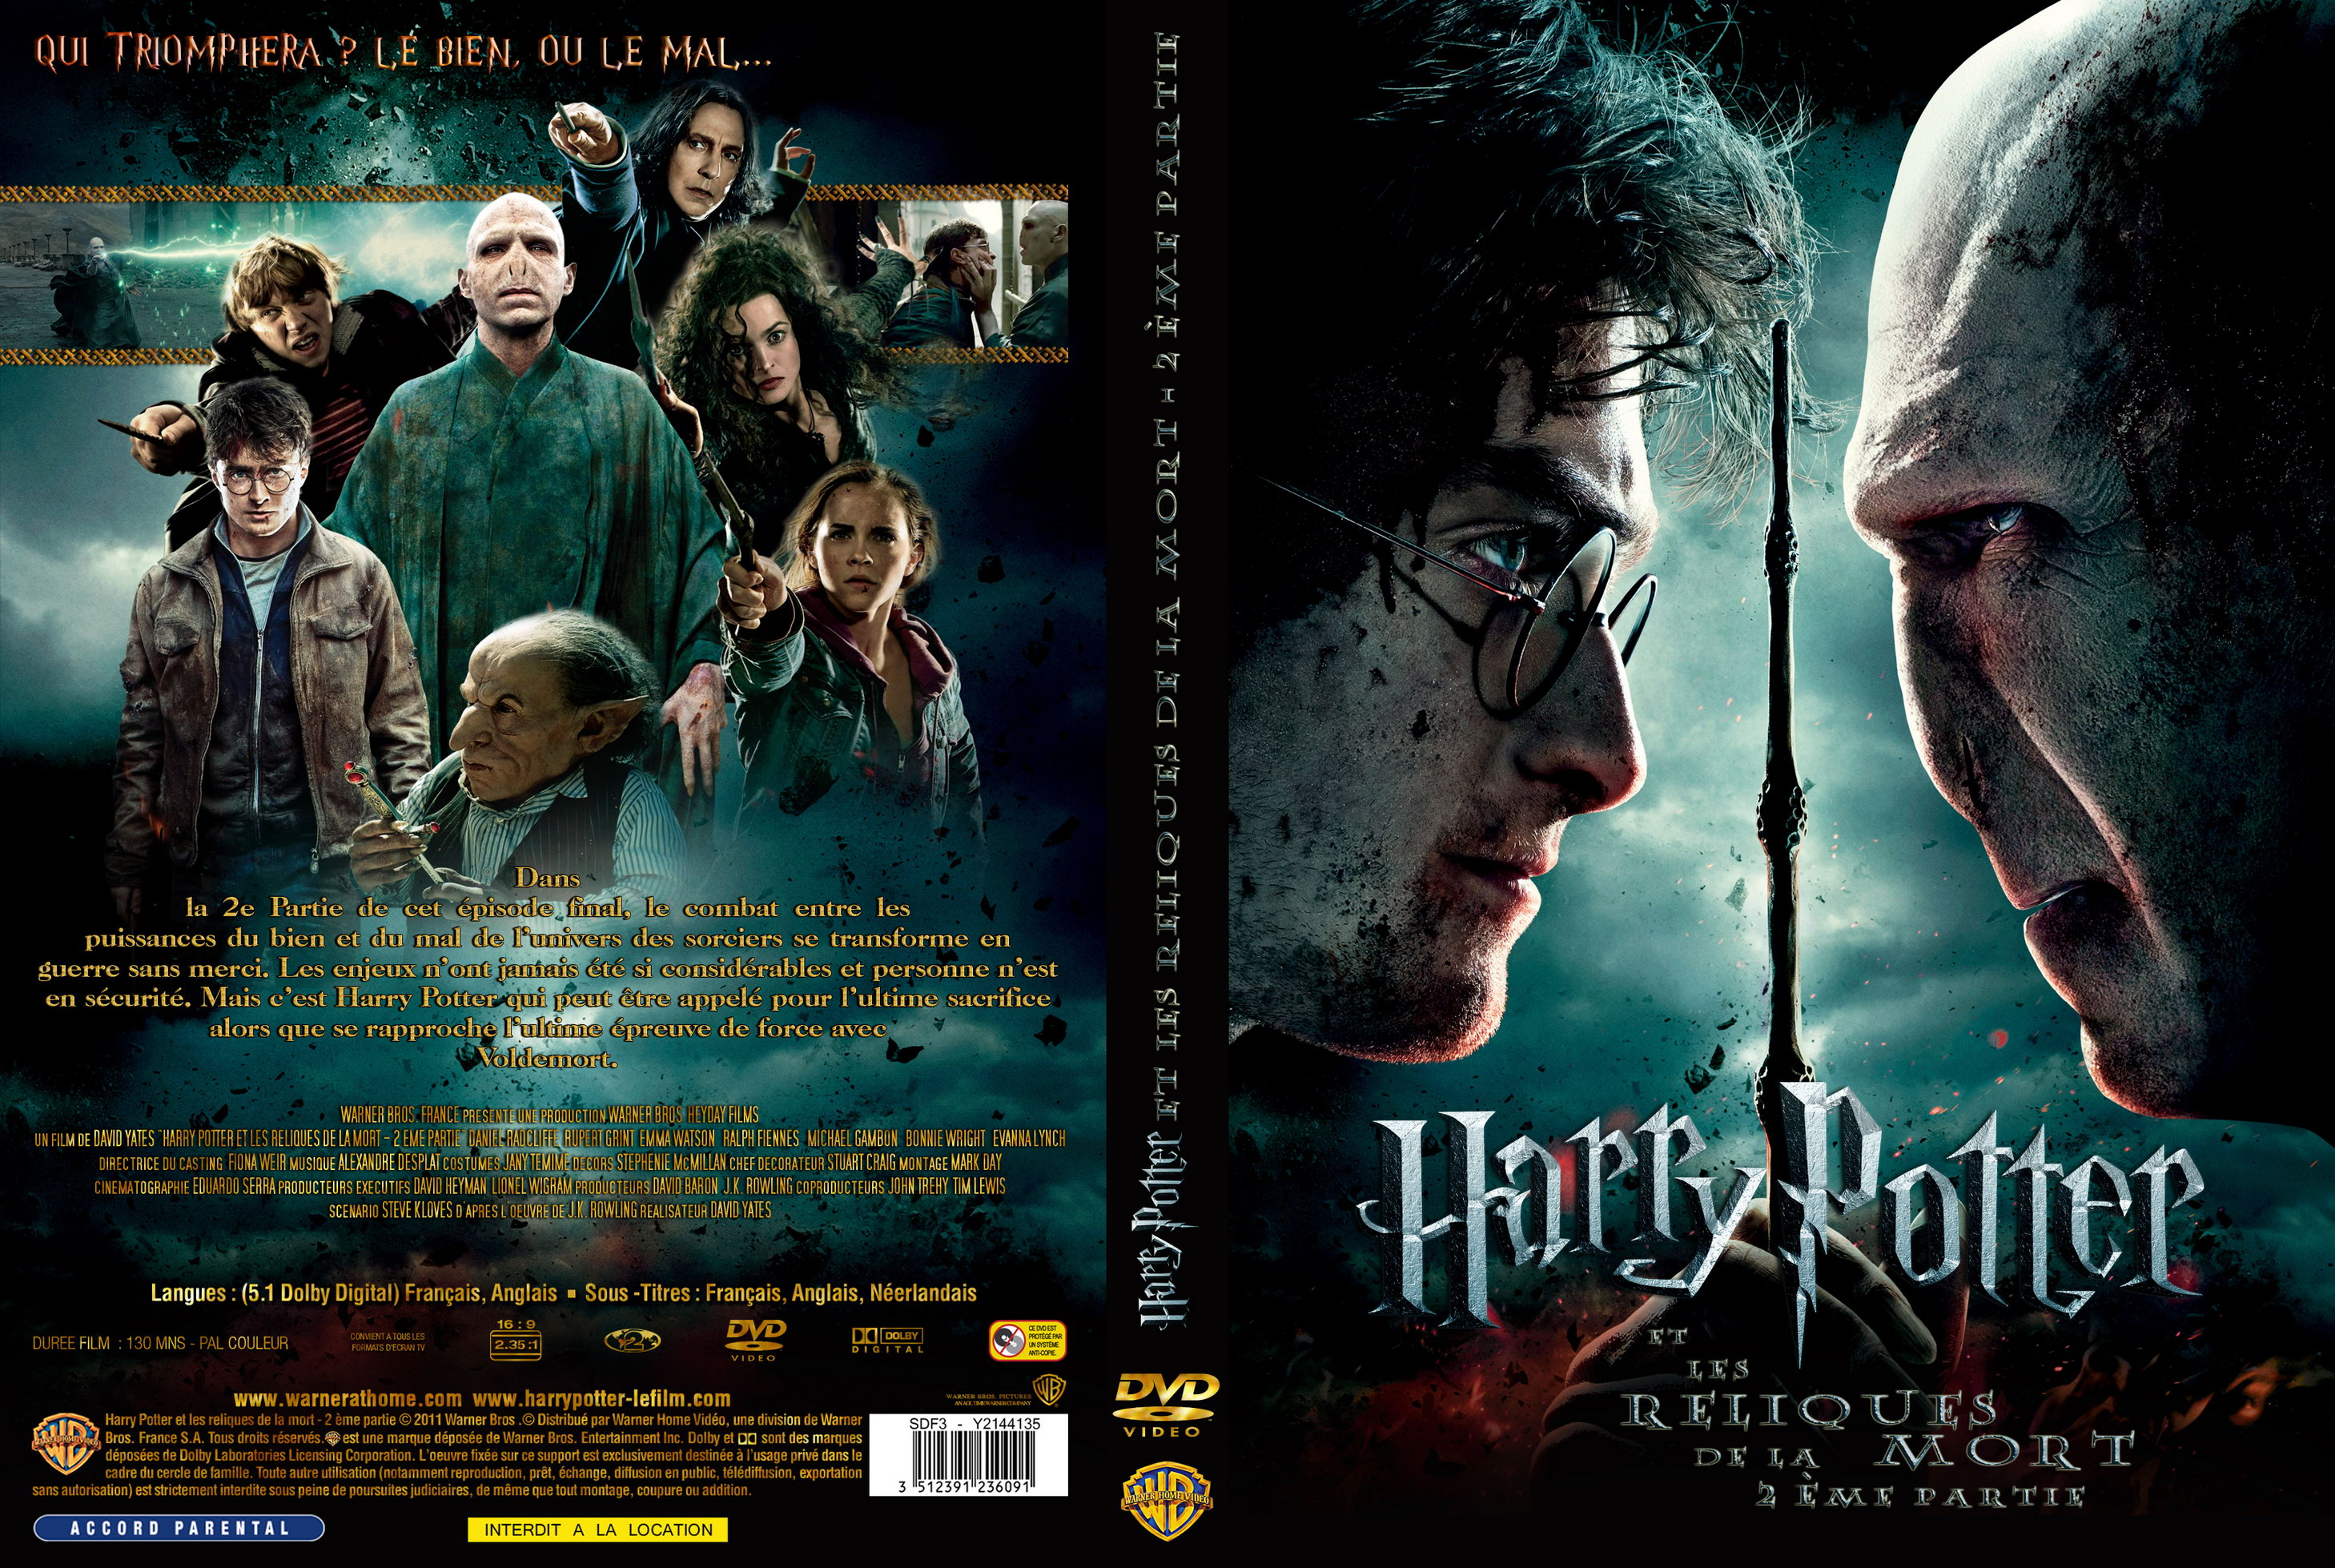 summary harry potter 7 Peter bradshaw: sensational, satisfying, surreal an explosive final chapter puts the magic back into the harry potter franchise.